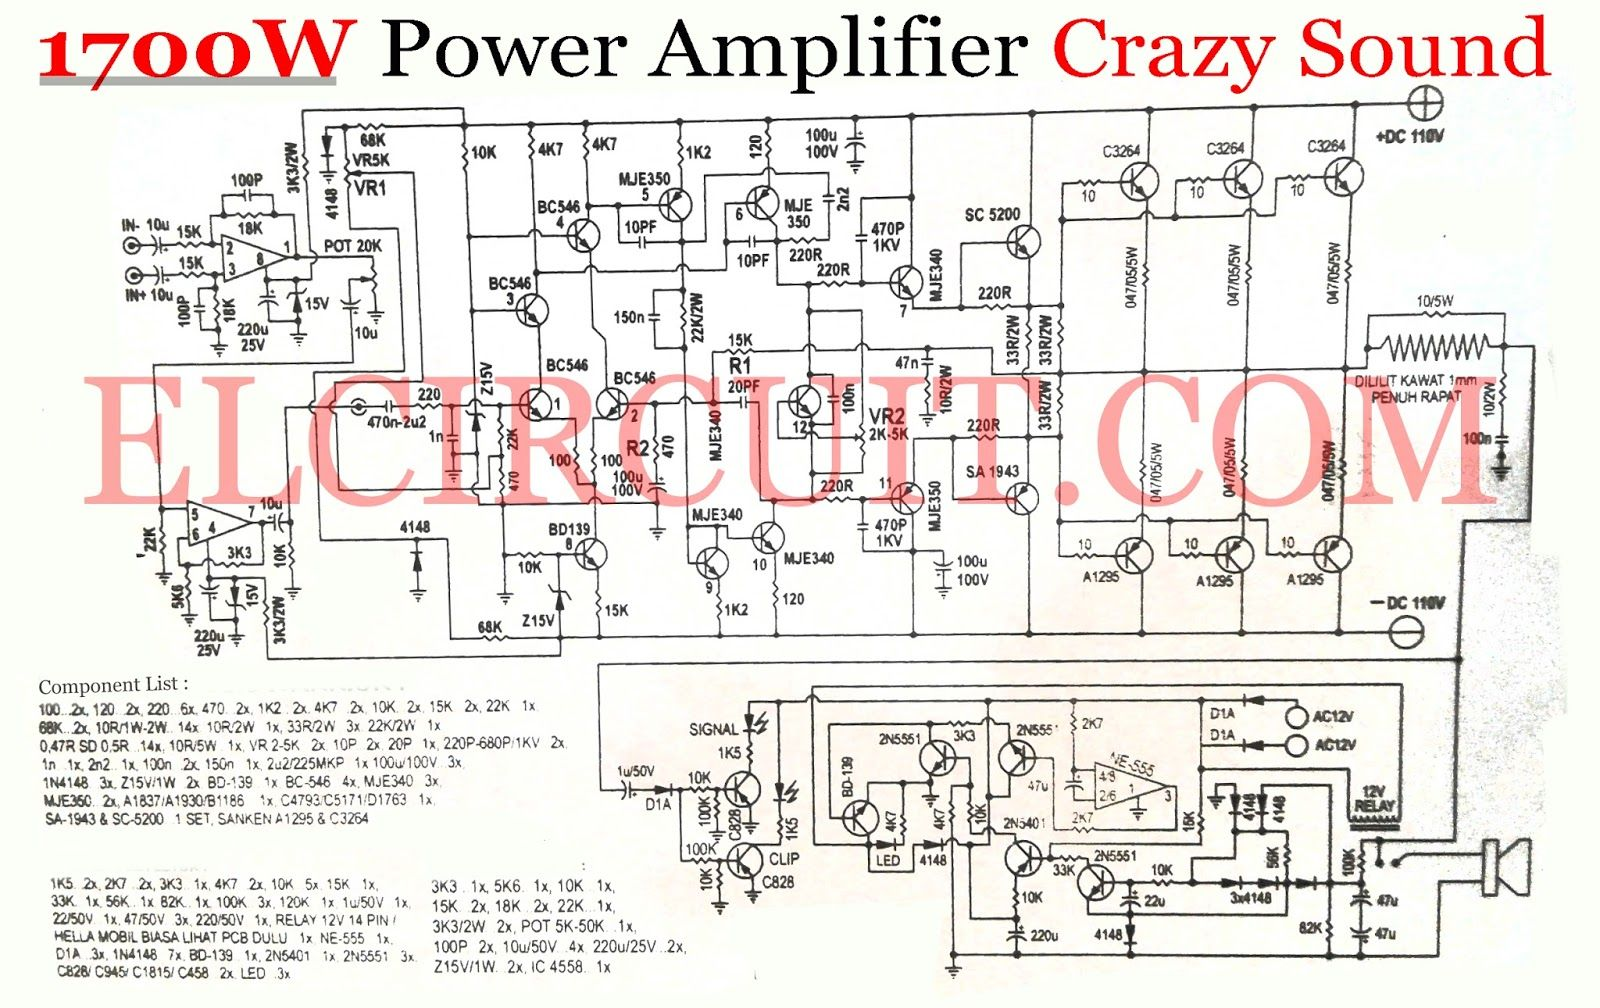 Crazy Sound 1700w Power Amplifier Circuit In 2018 Electronic Stuff Simple Remote Control Tester Eleccircuitcom Output Supply Diagram Audio